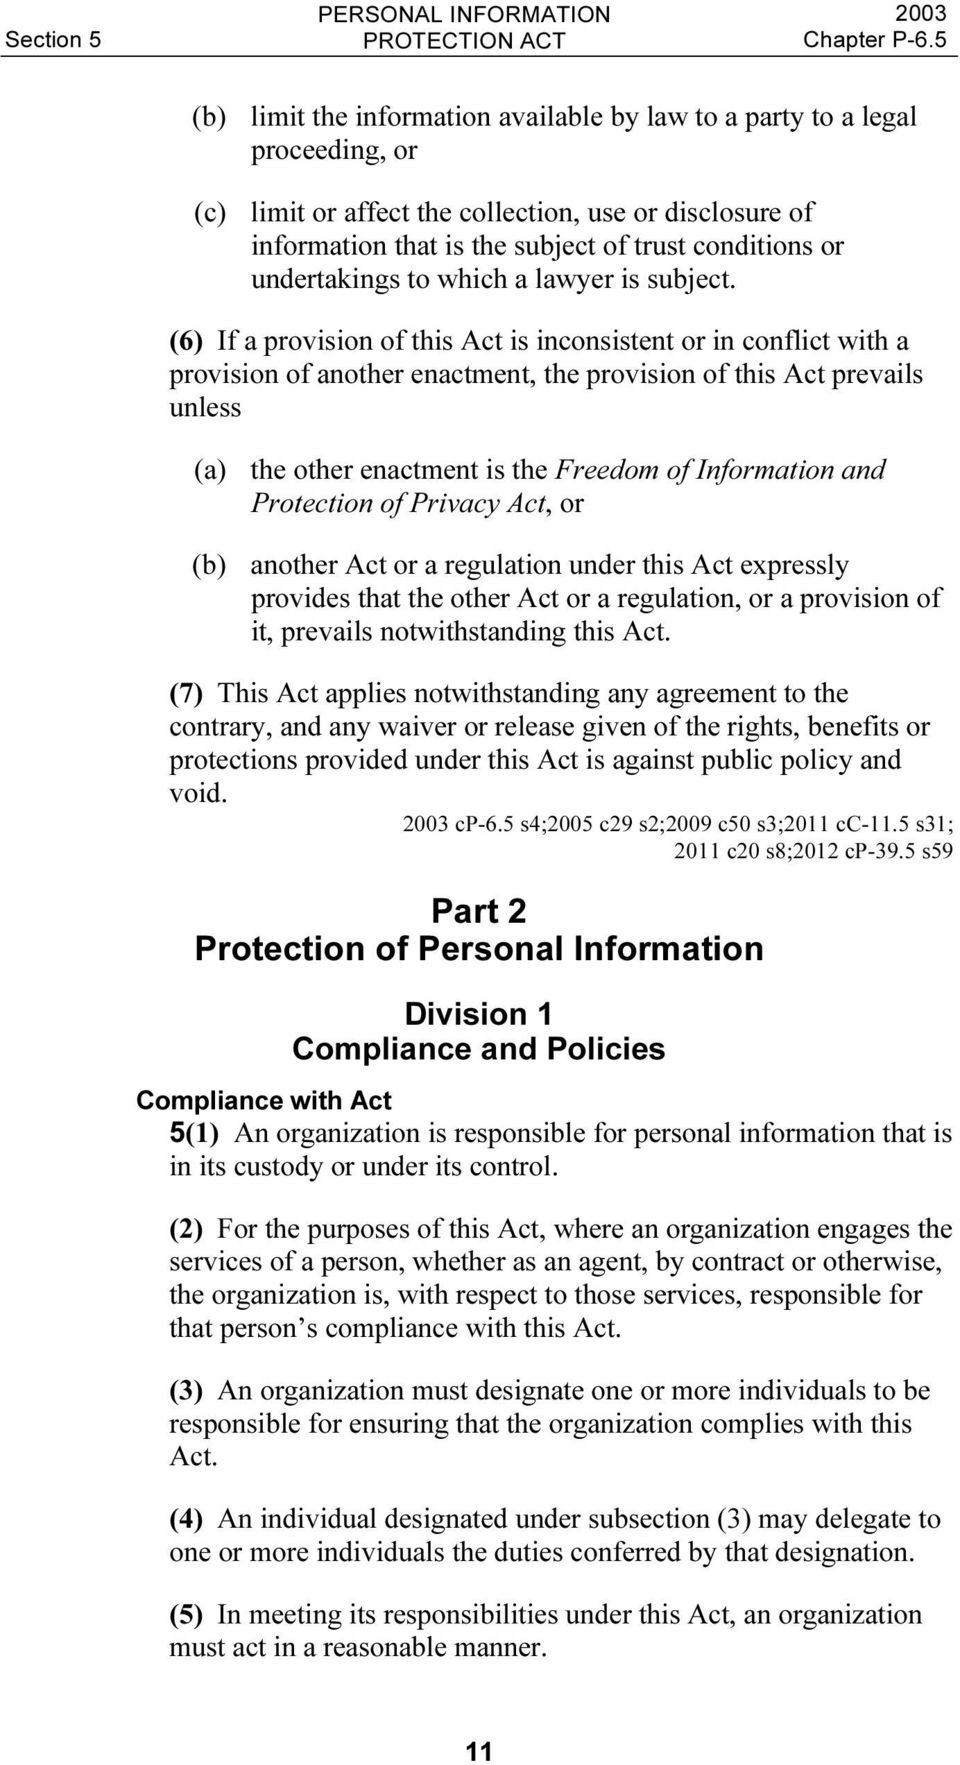 (6) If a provision of this Act is inconsistent or in conflict with a provision of another enactment, the provision of this Act prevails unless (a) the other enactment is the Freedom of Information